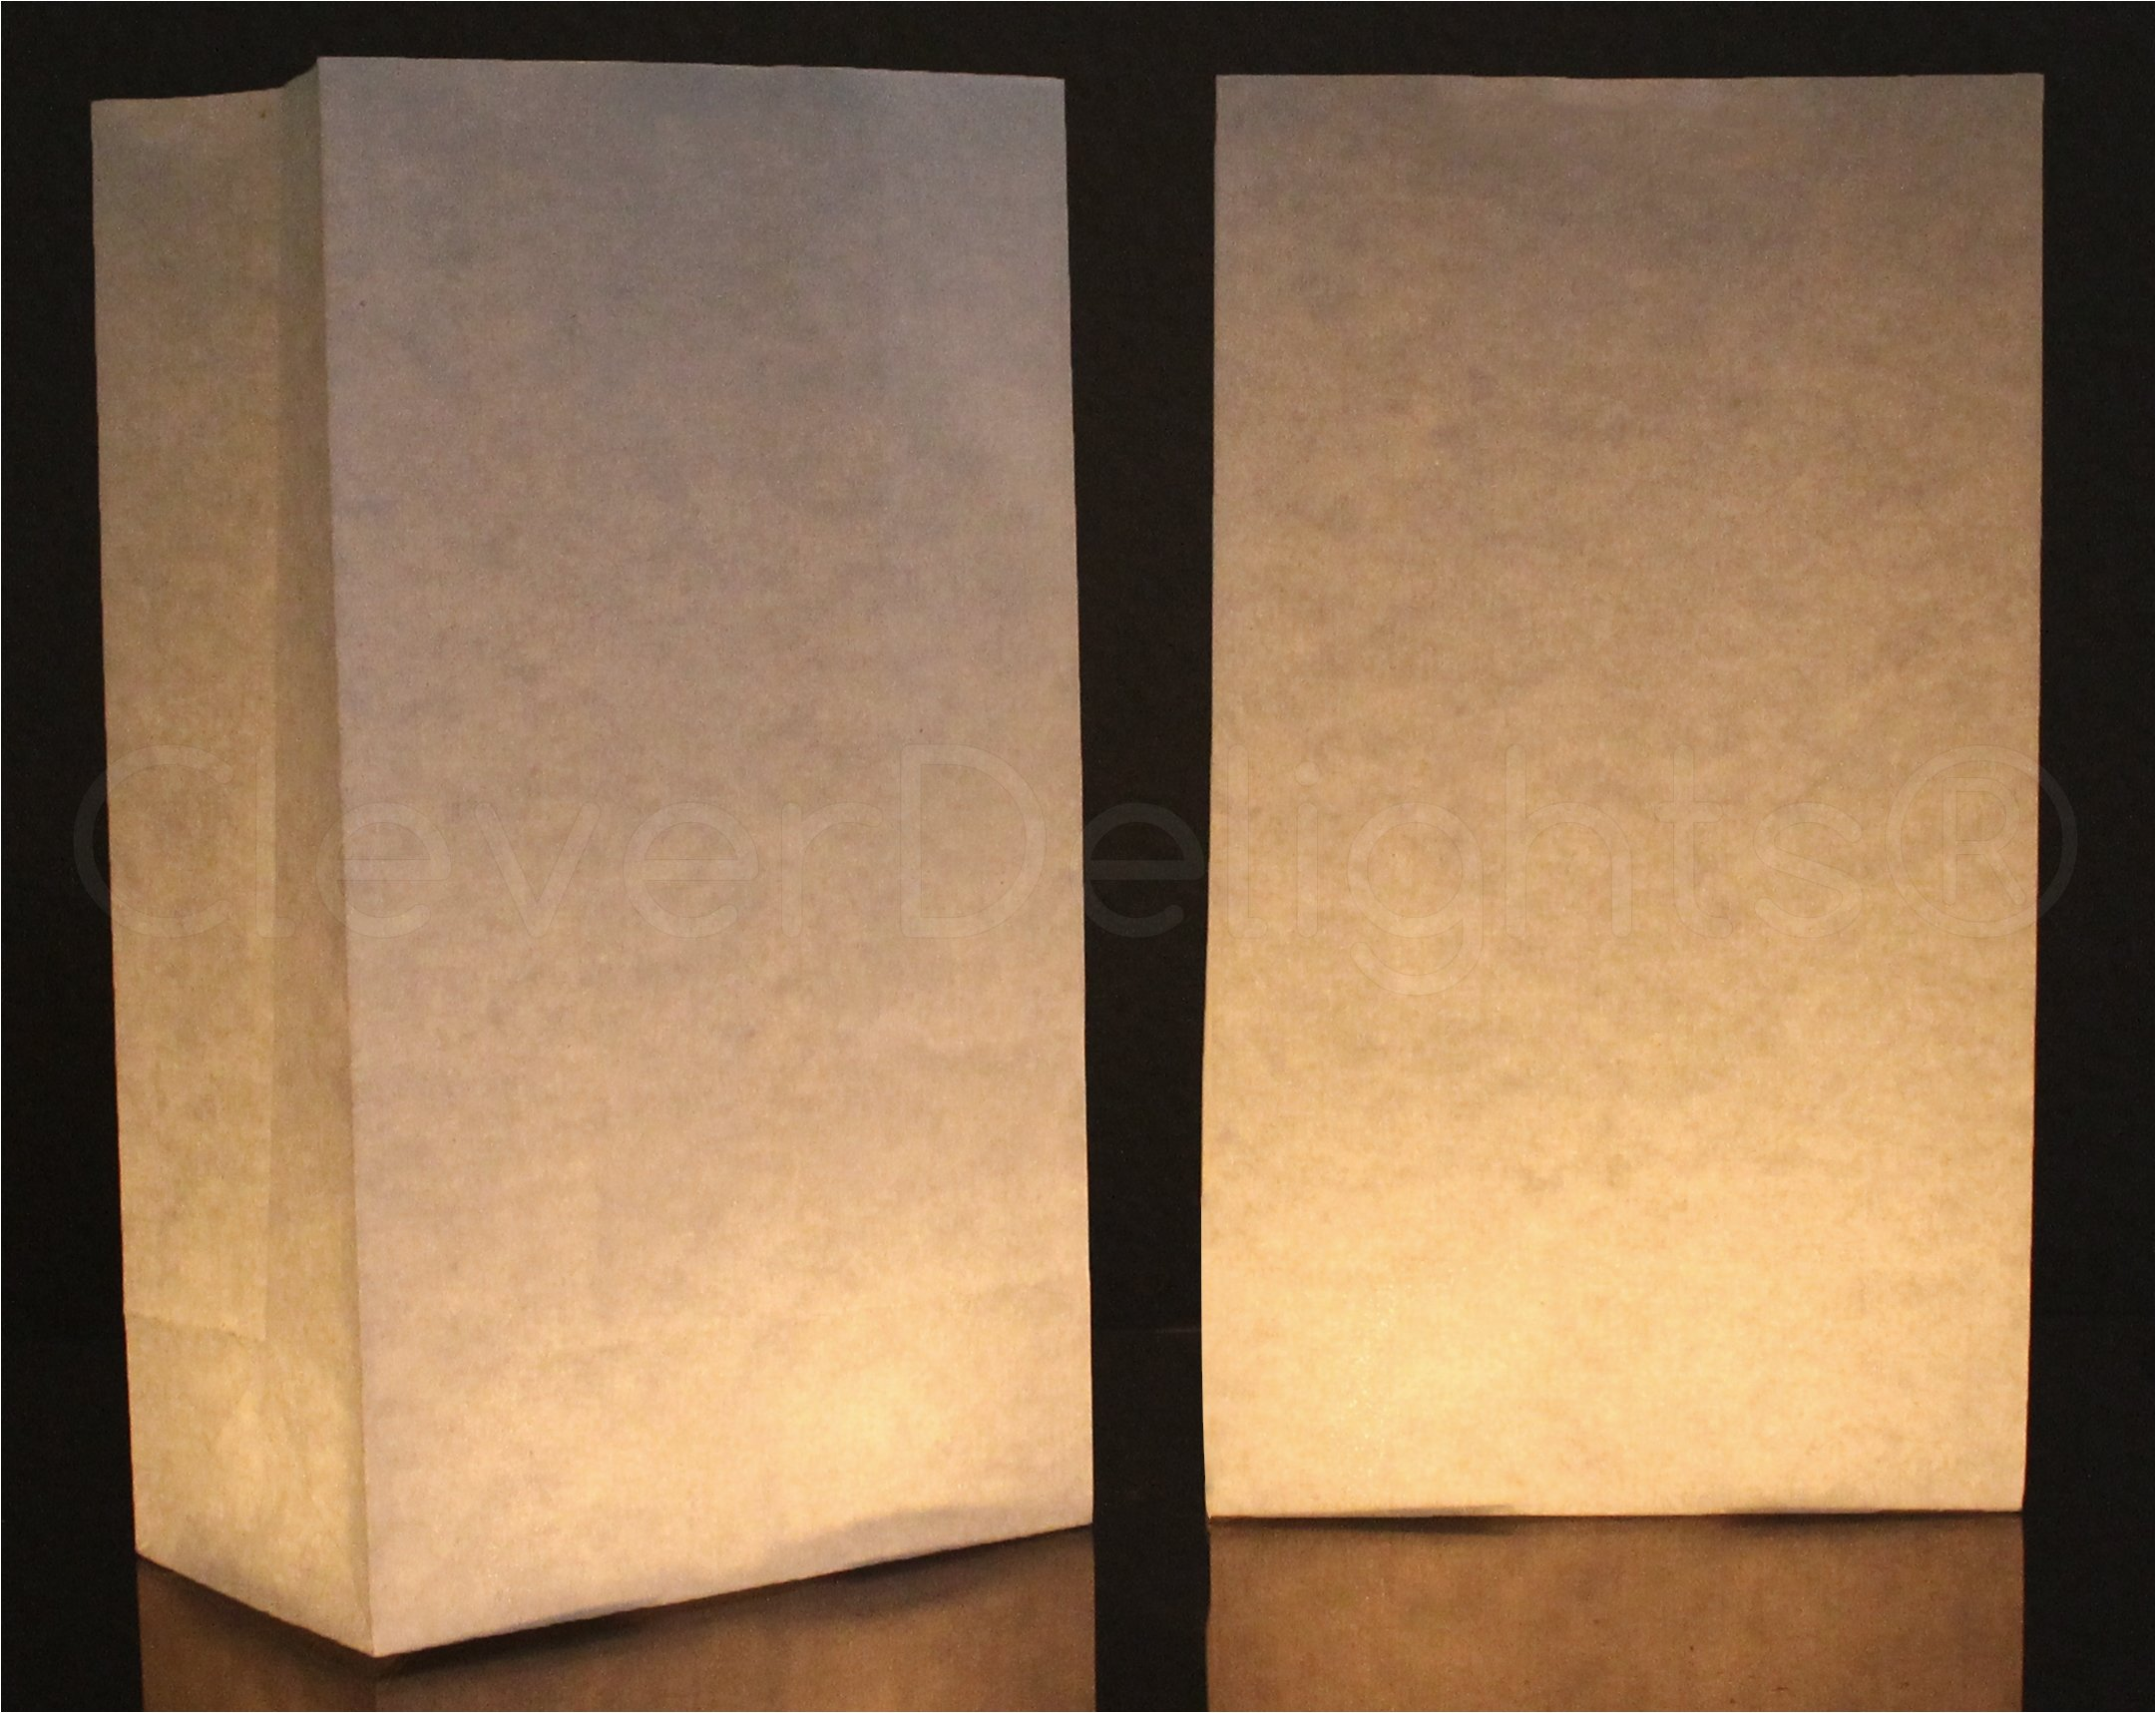 20 Pk - CleverDelights White Luminary Bags - Flame Resistant Paper - Wedding Christmas Holiday Luminaria by CleverDelights